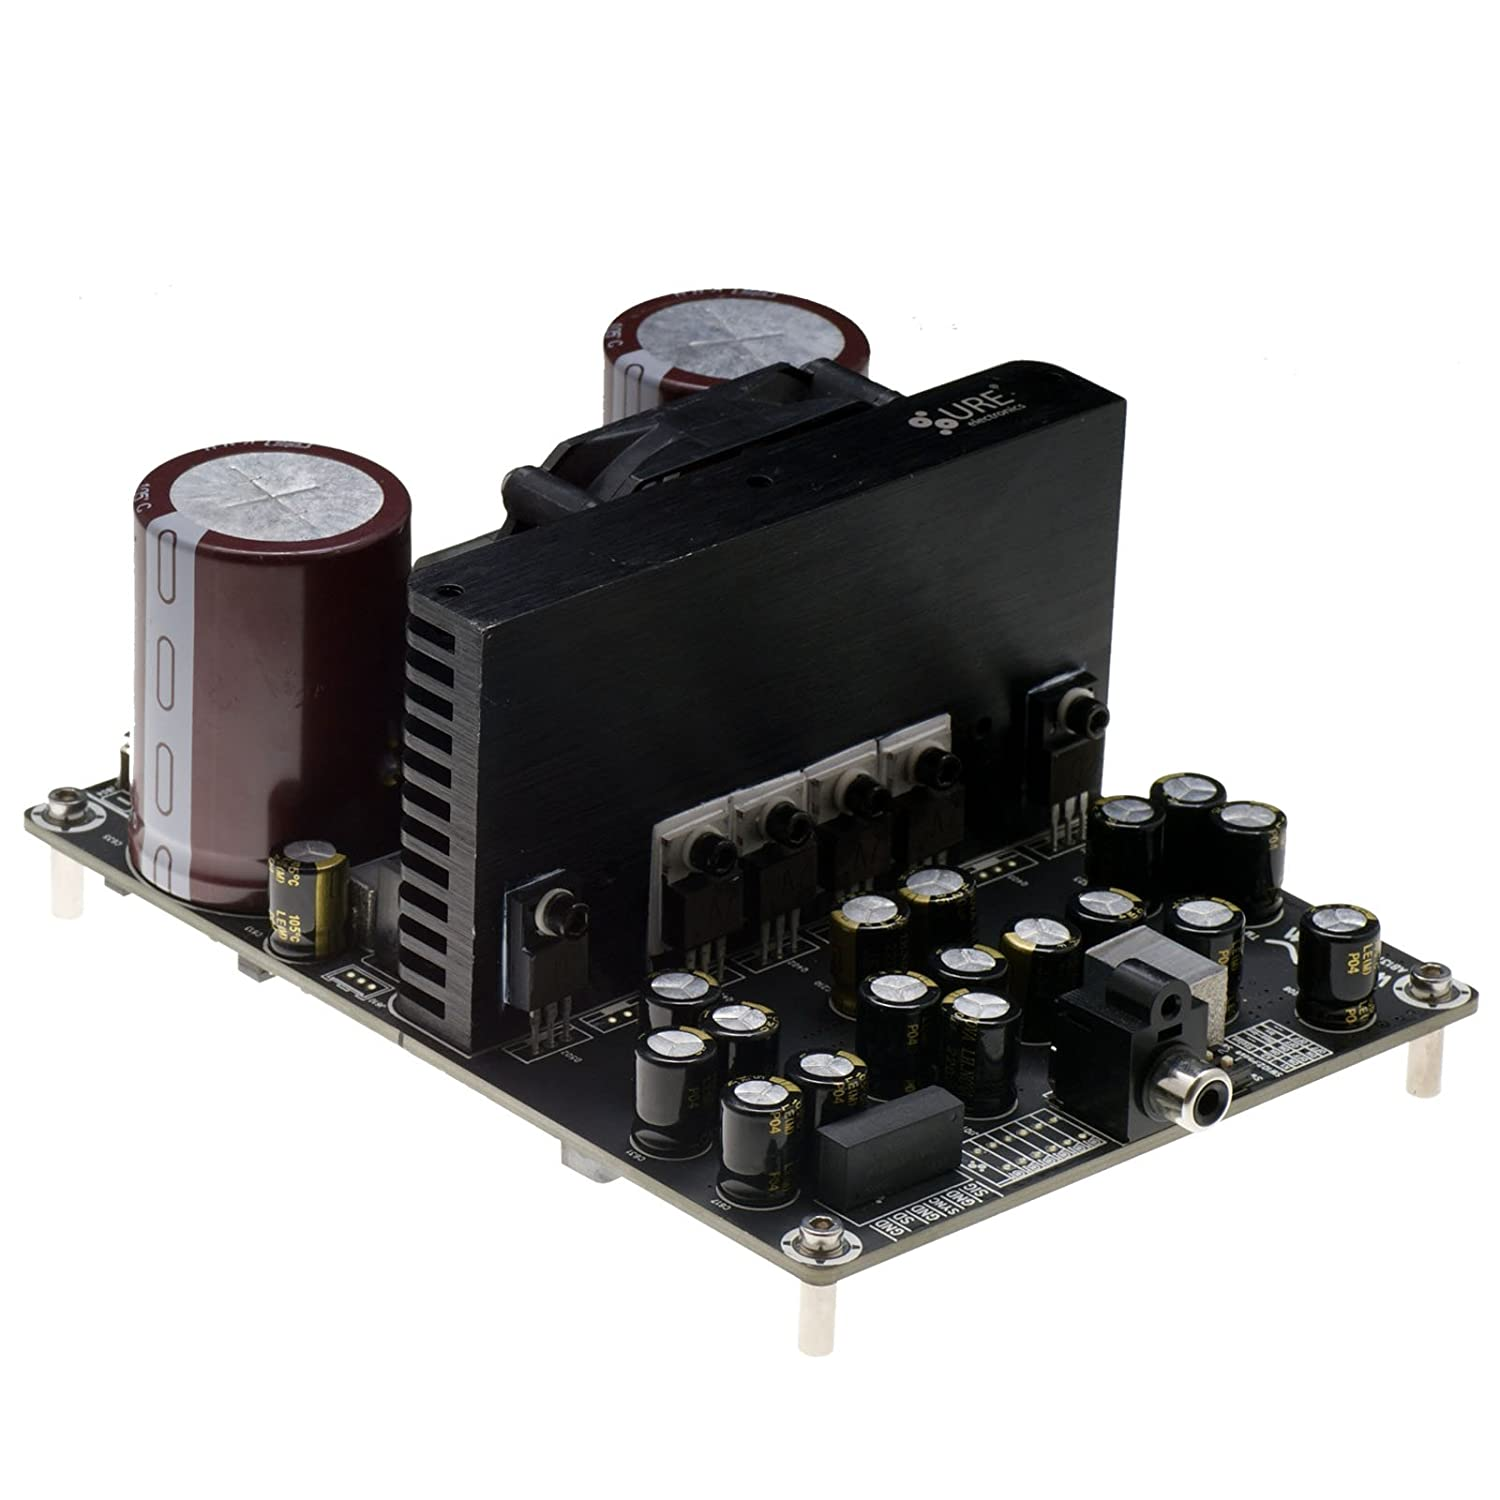 Wondom 1 X 1000watt Class D Audio Amplifier Board 1000w Mosfet Circuit Irs2092 Mono Channel Amp For Driving Coil And Railway Transportation Auido Car